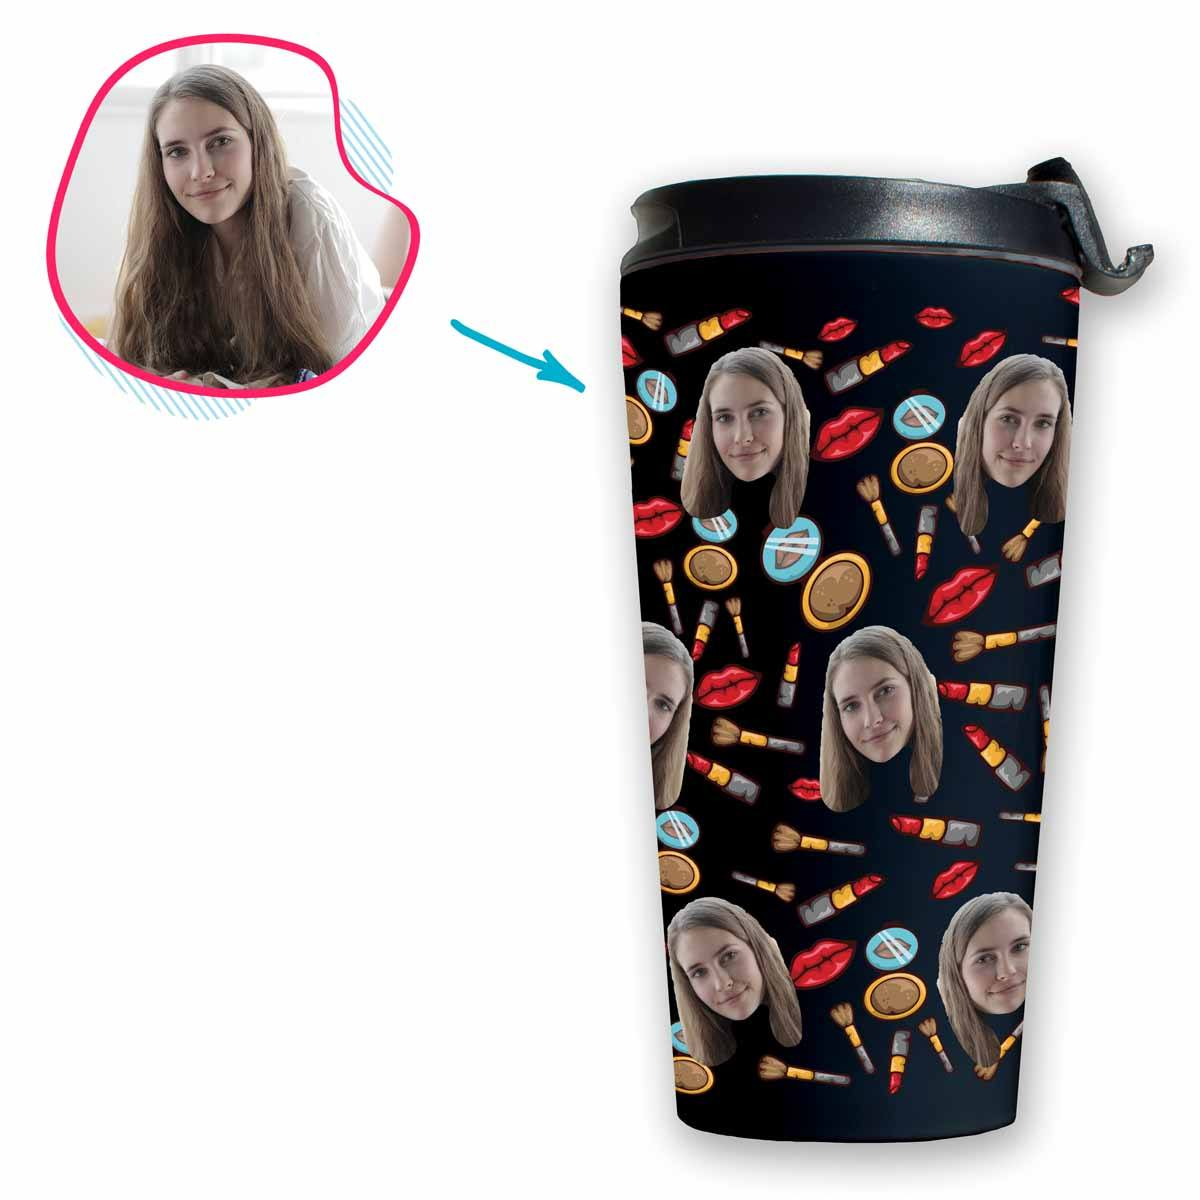 Dark Makeup personalized travel mug with photo of face printed on it